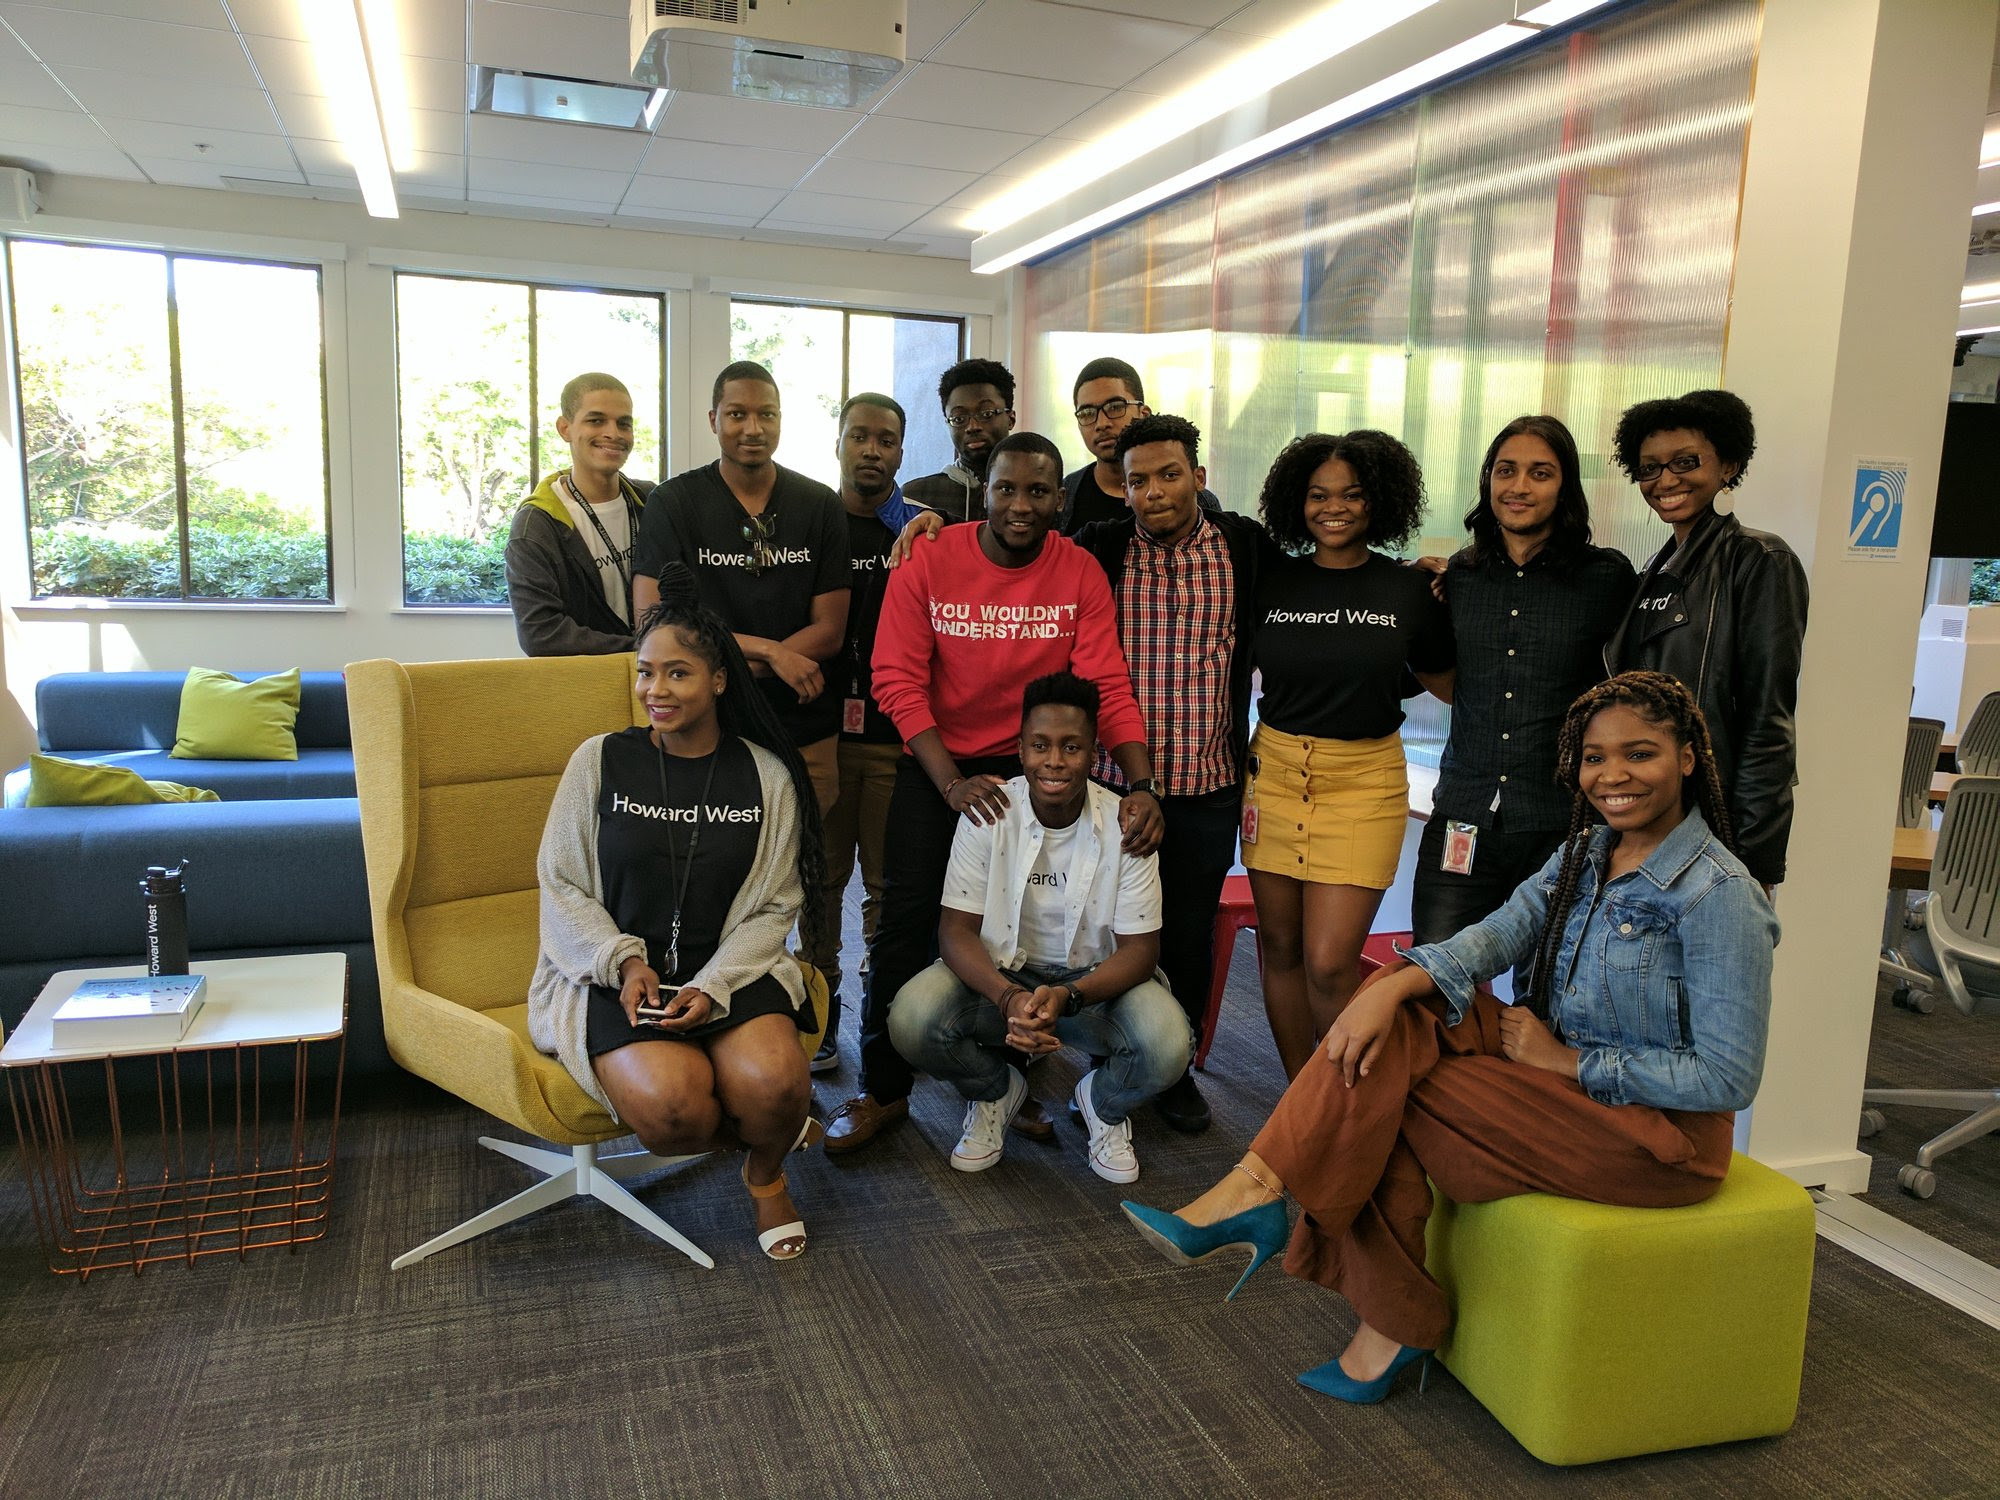 Google has launched Howard West, a three-month engineering residency on its campus for Howard University computer science majors. The students are shown in at the Googleplex. (Credit: Google)